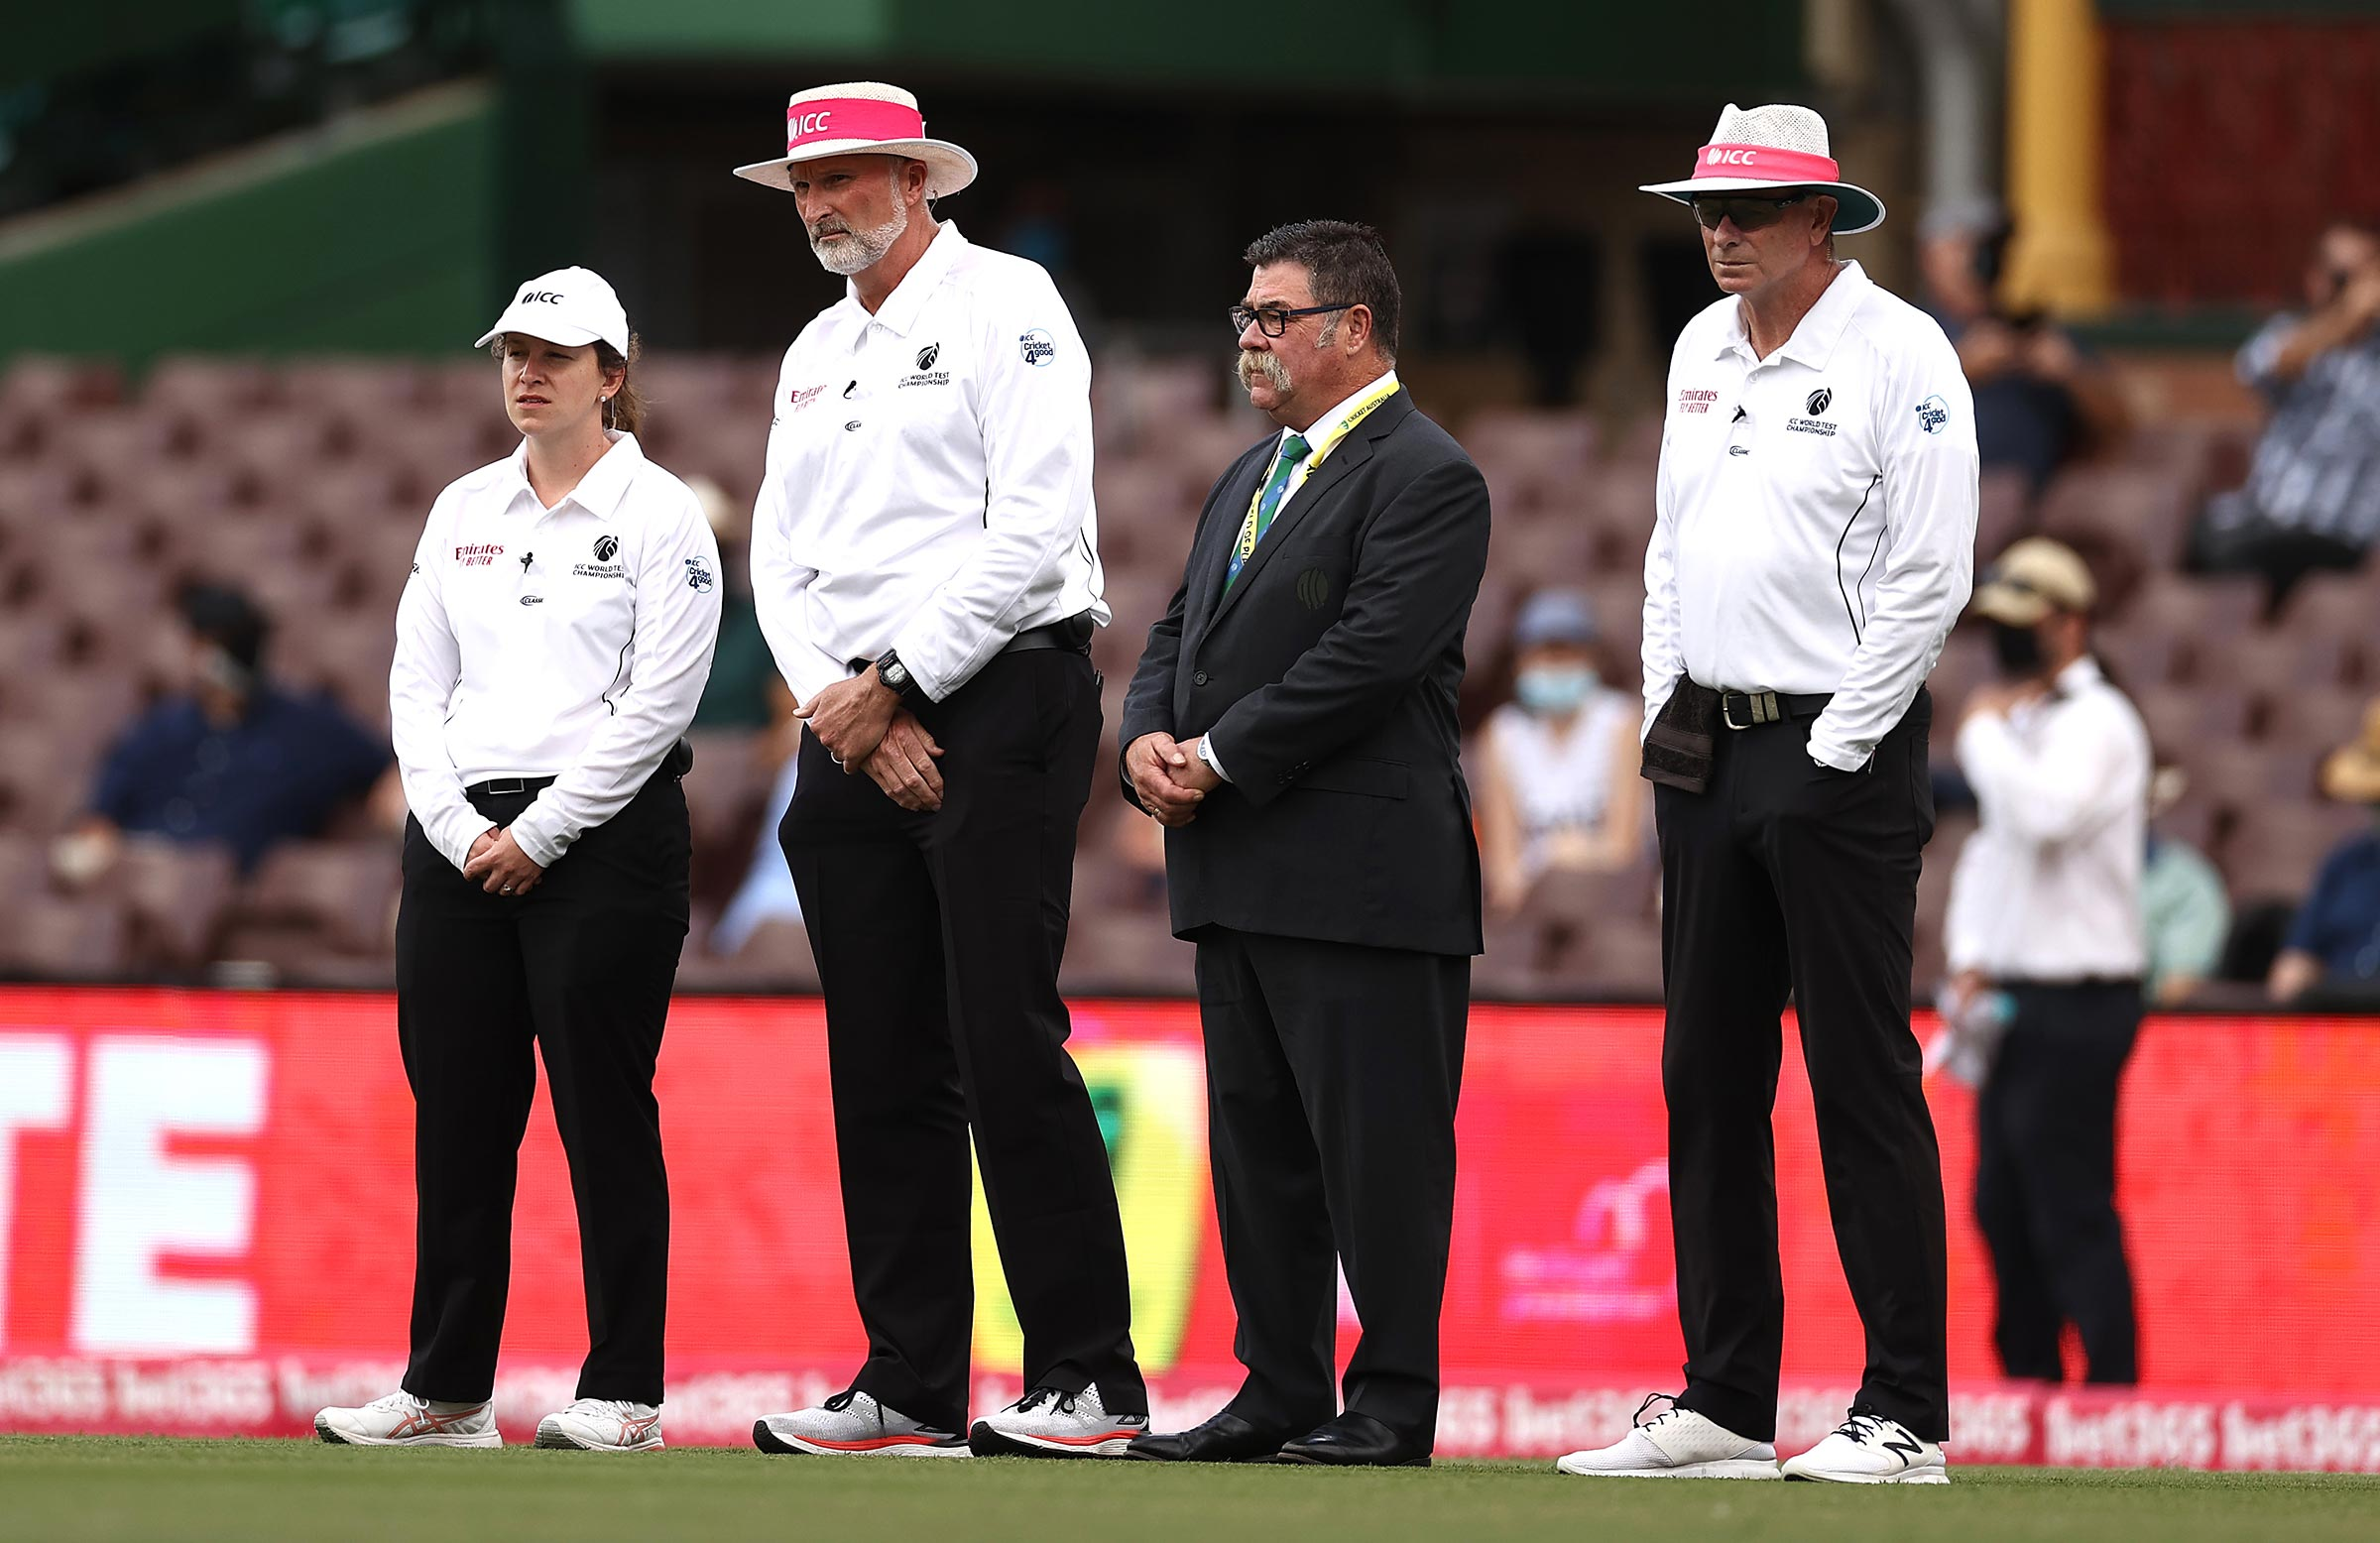 Polosak with Paul Wilson, David Boon and Paul Reiffel at the SCG // Getty